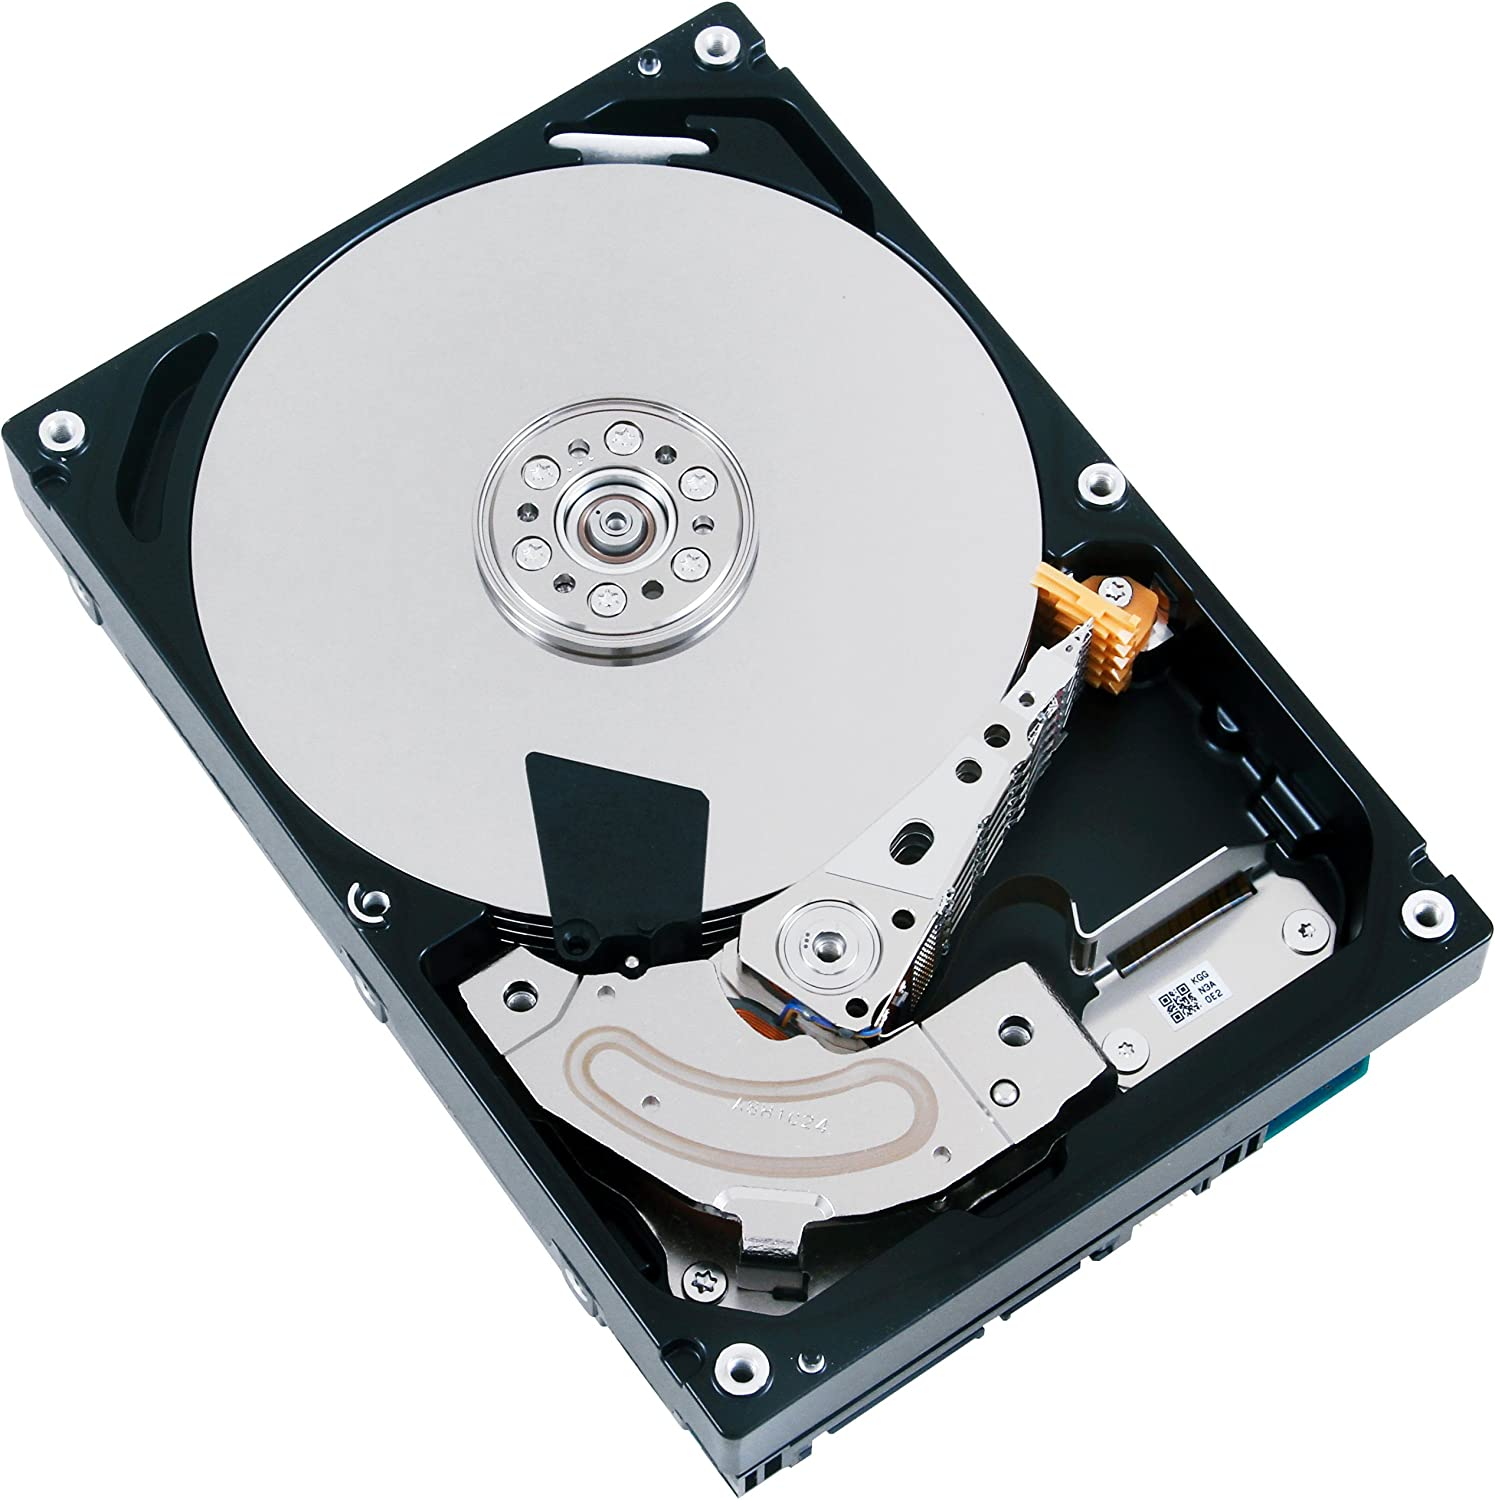 Toshiba 4TB SATA 6GB//S 7.2K RPM 3.5IN DISC PROD RPLCMNT PRT See Notes